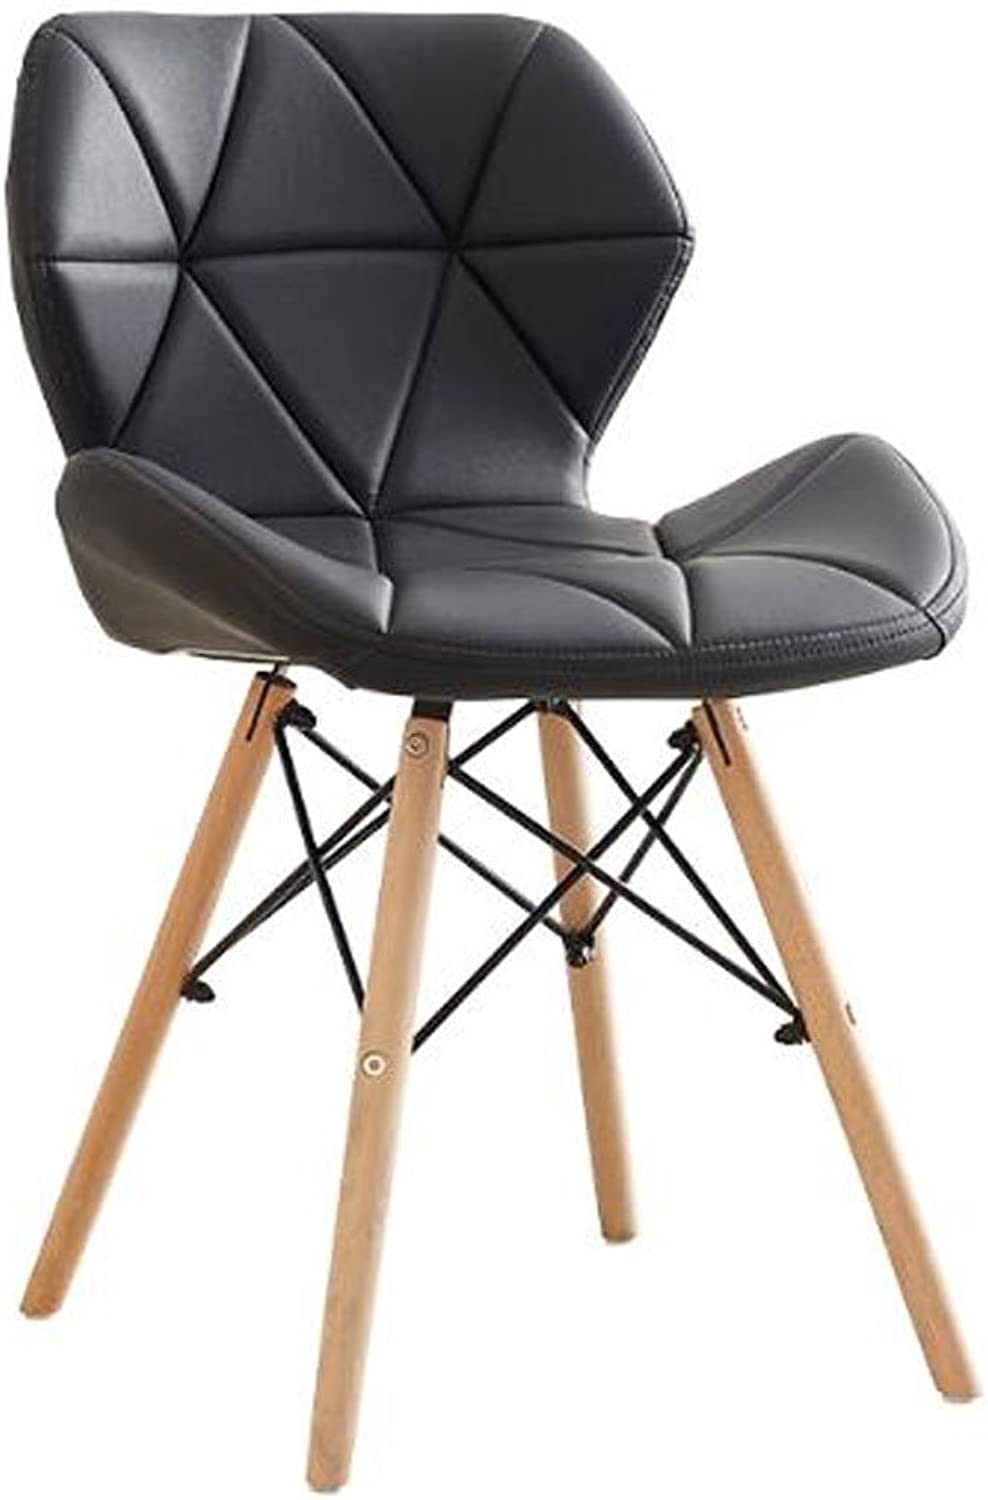 LQQGXL Modern Minimalist Chair, Computer Chair, Solid Wood Dining Chair Creative Dining Chair, (color   A)